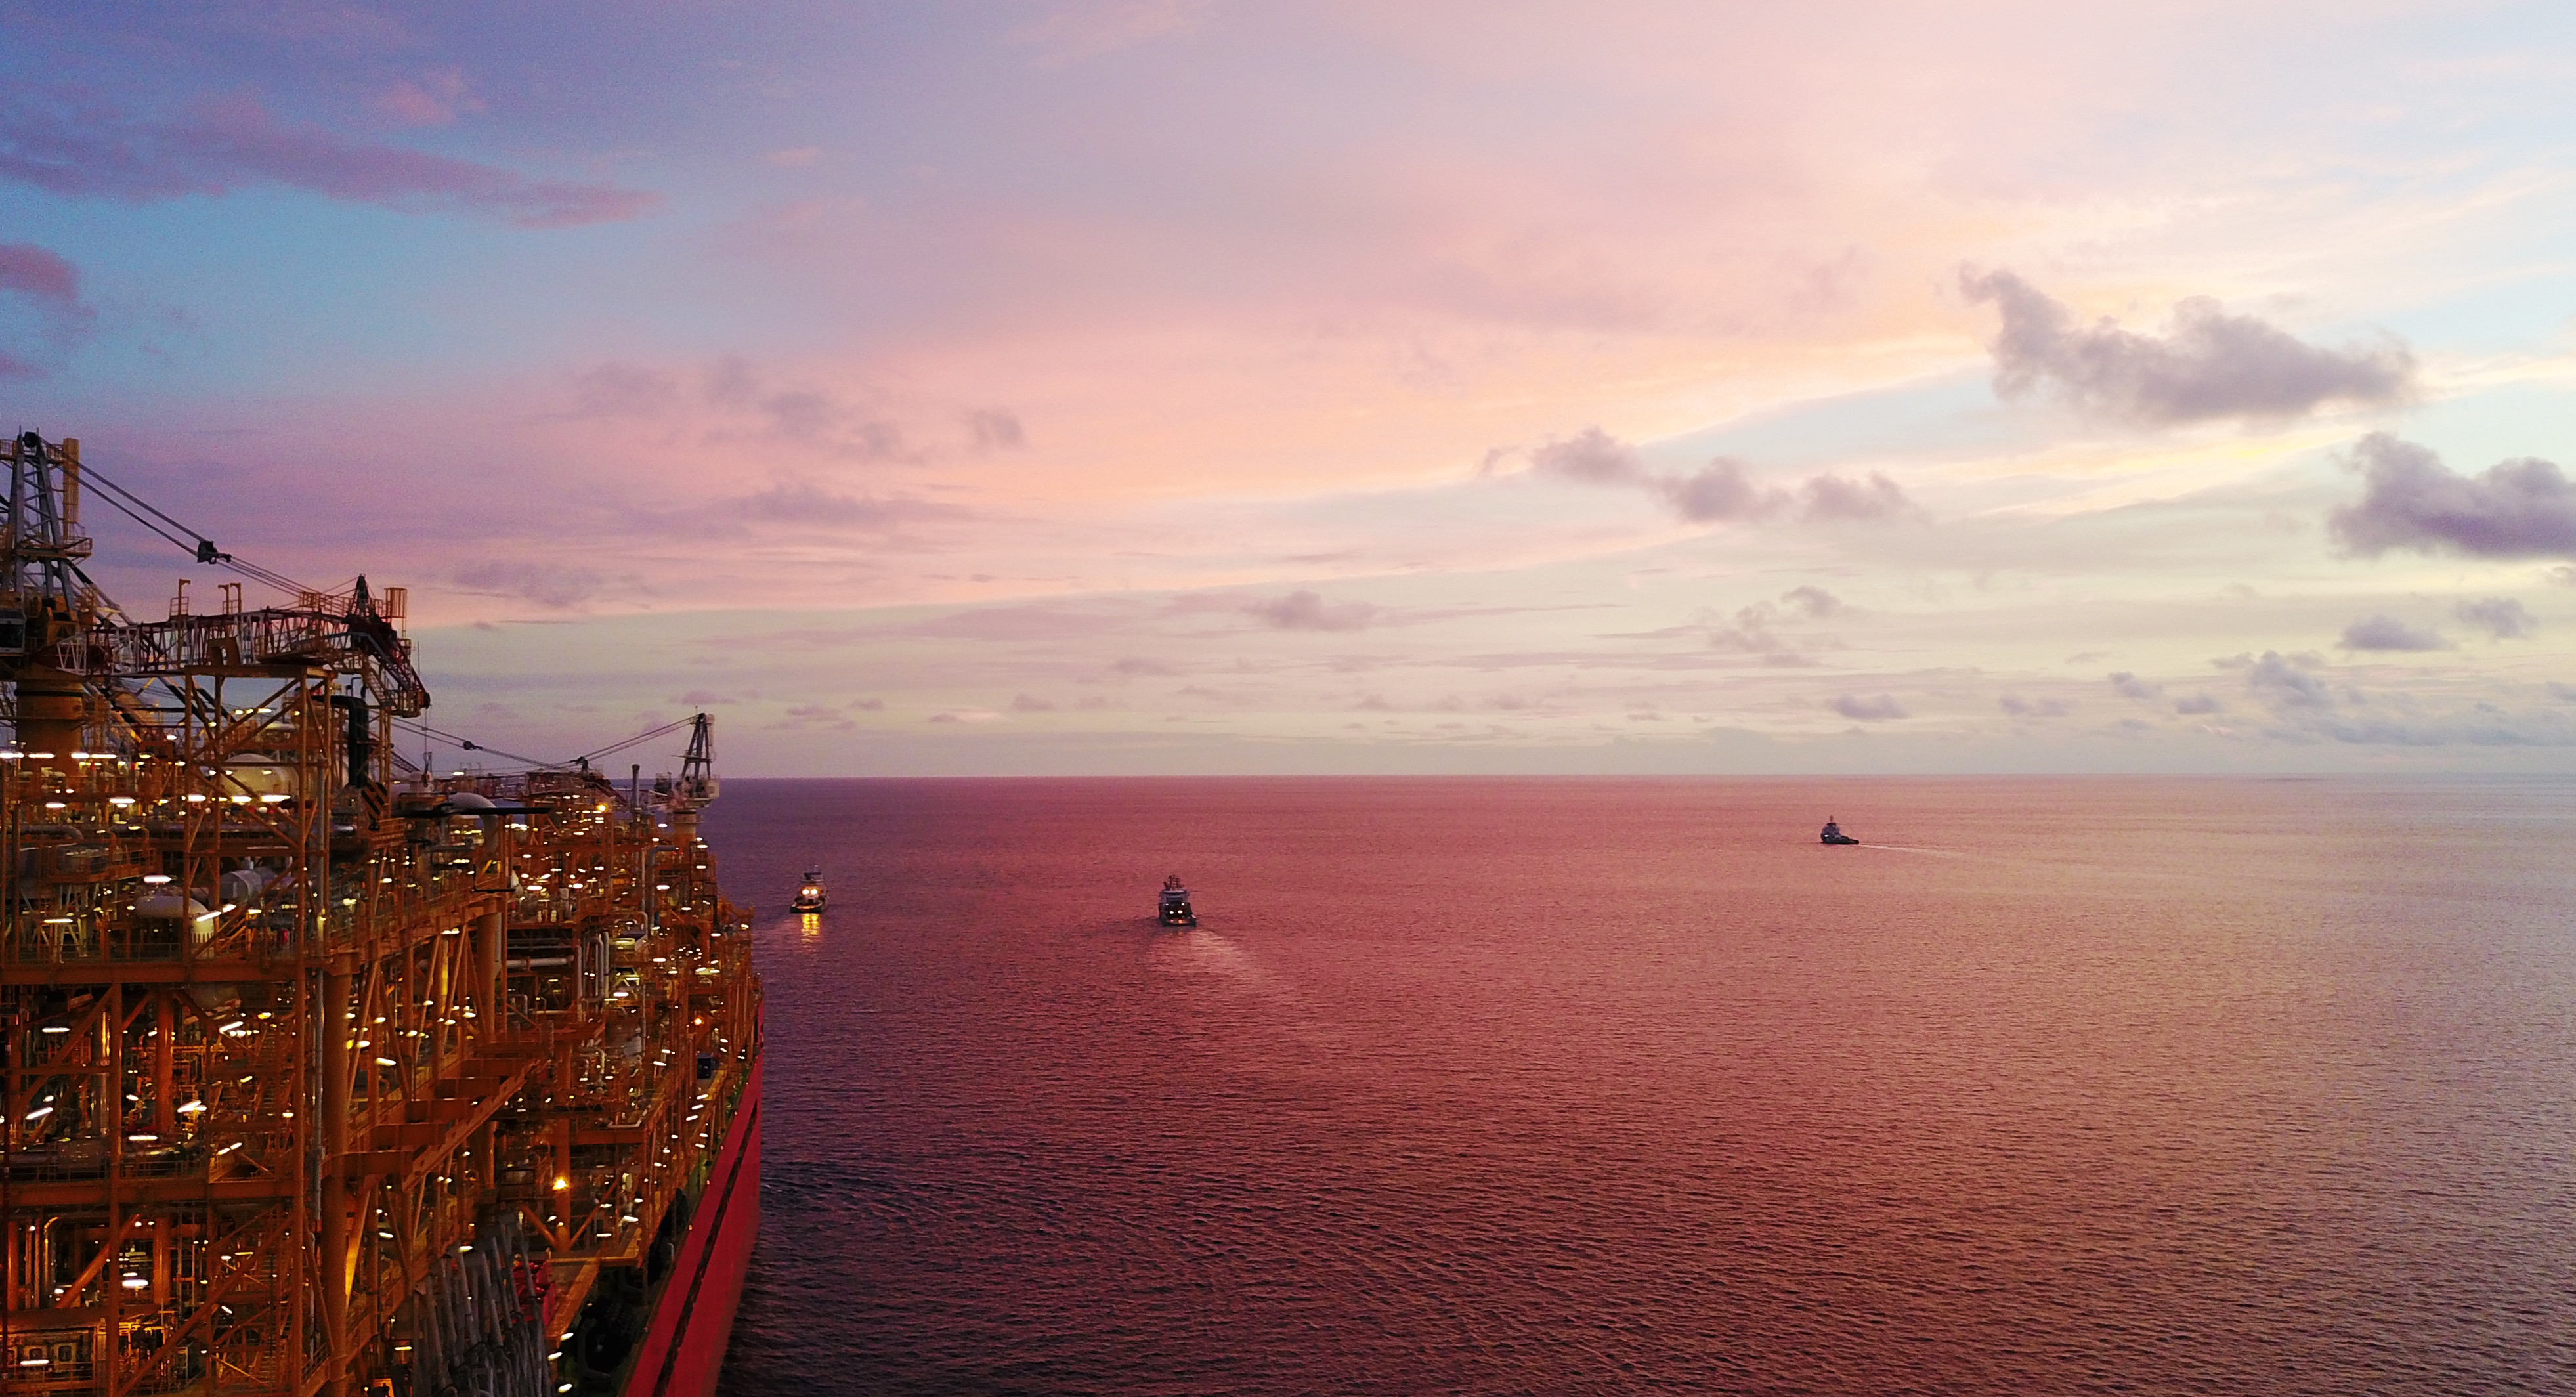 Sunset from Prelude FLNG facility